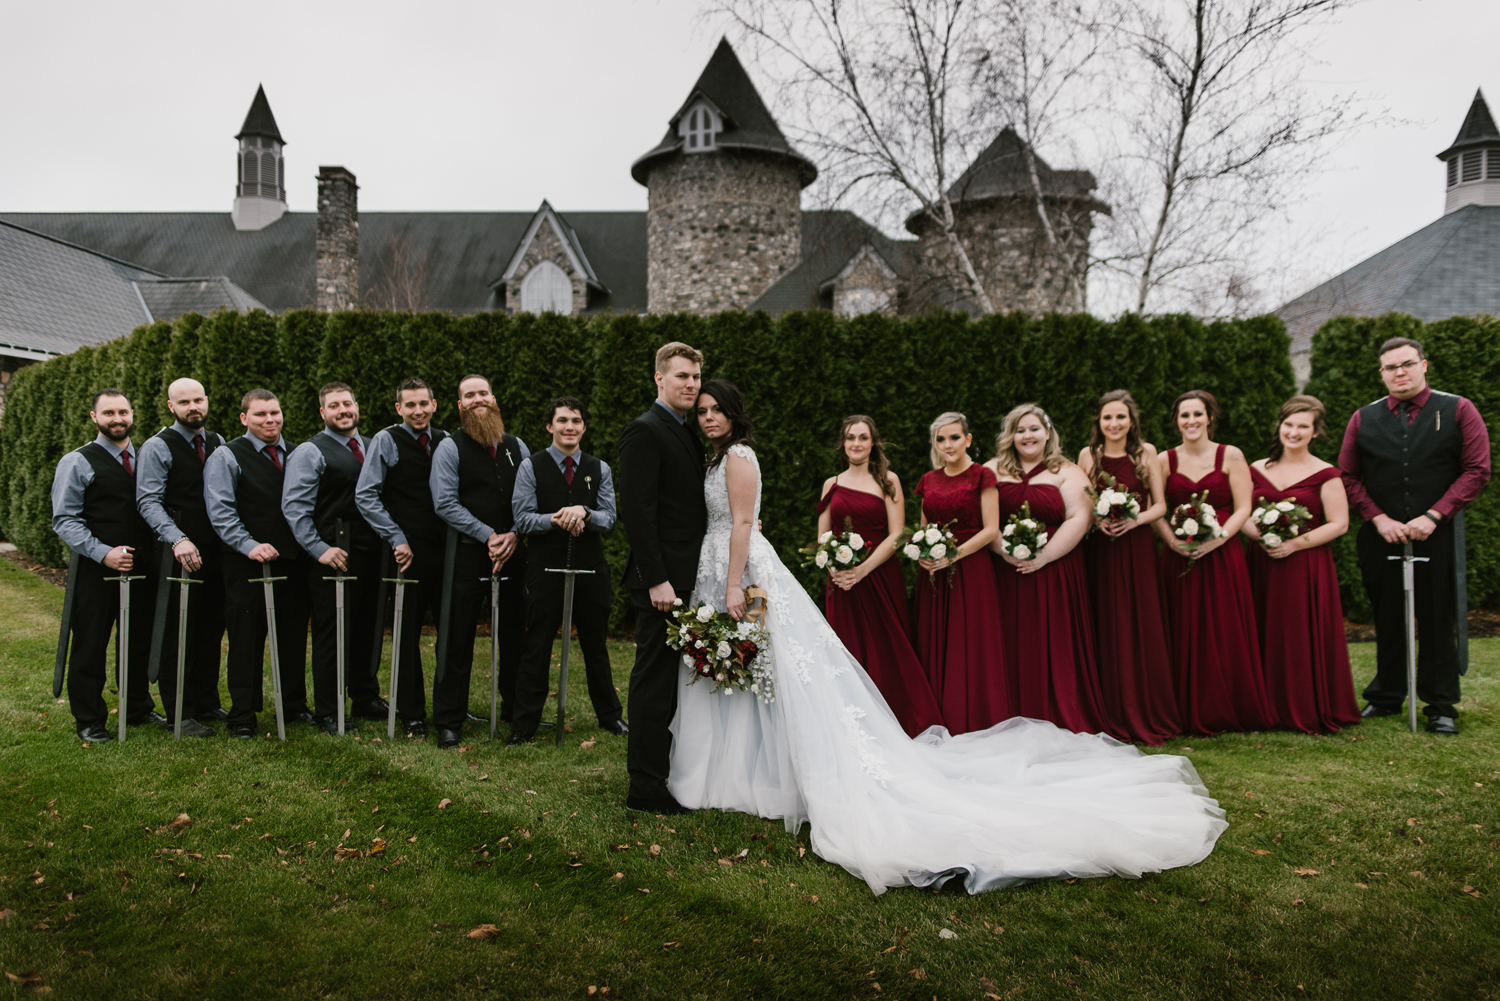 Castle-Farms-Game-of-Thrones-wedding-northern-michigan (40).jpg